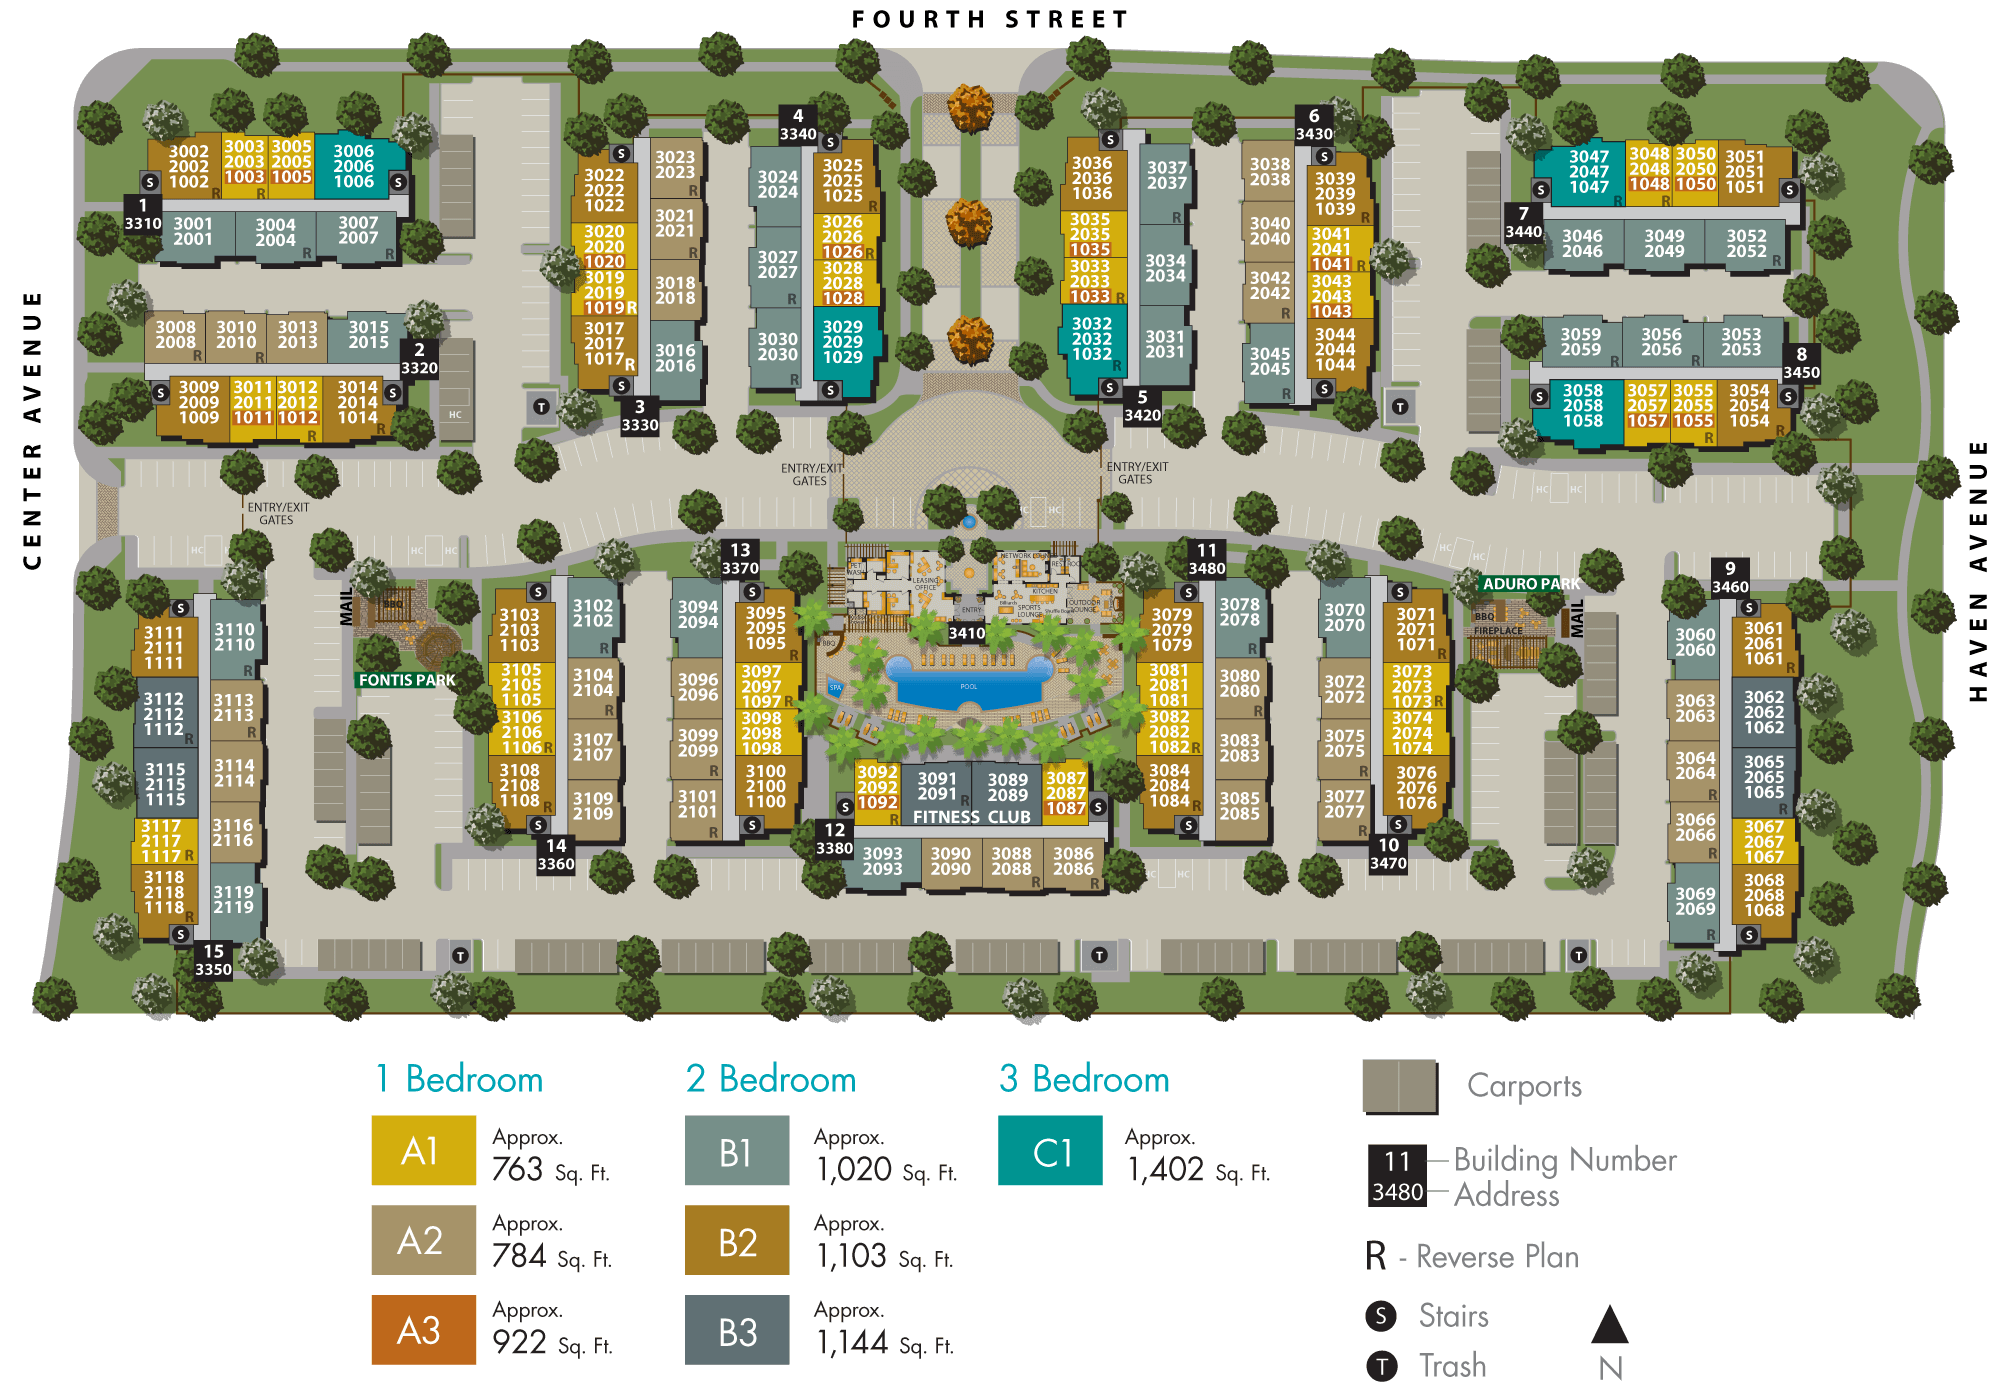 Vistara Site Plan